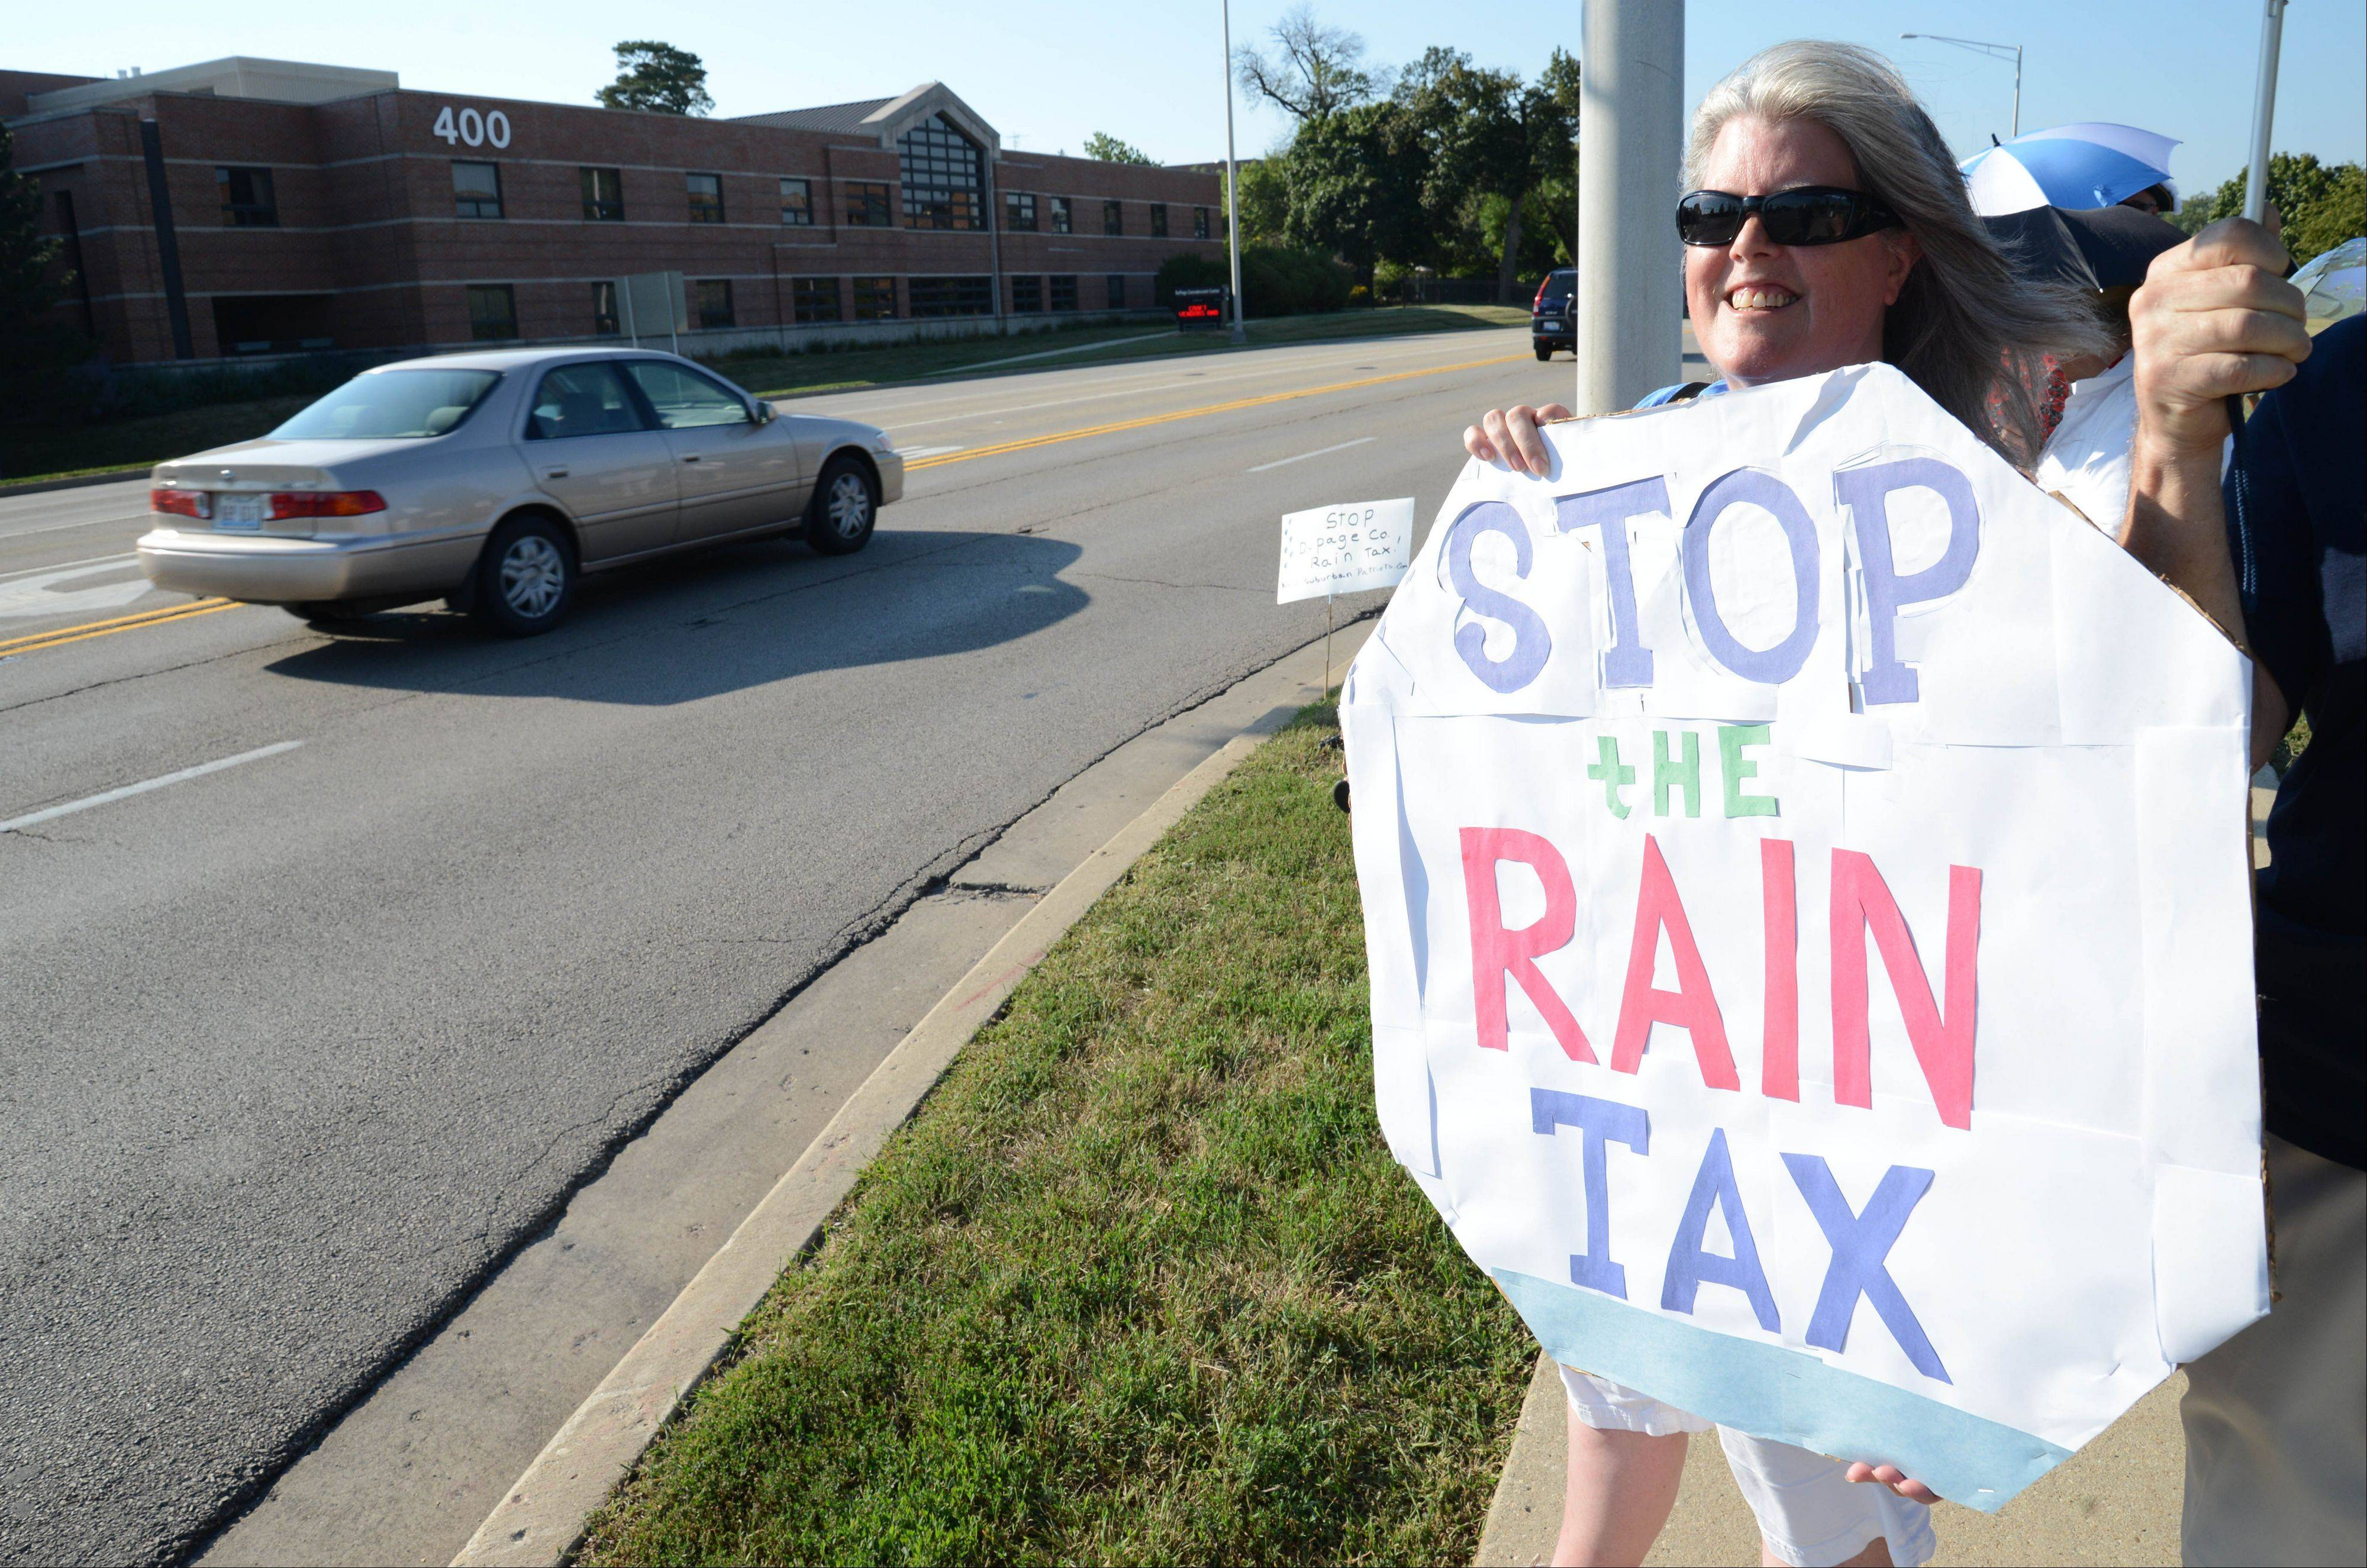 On Tuesday night, Janet Shaw of Wheaton and more than 30 other residents protested in front of DuPage County's administration building.